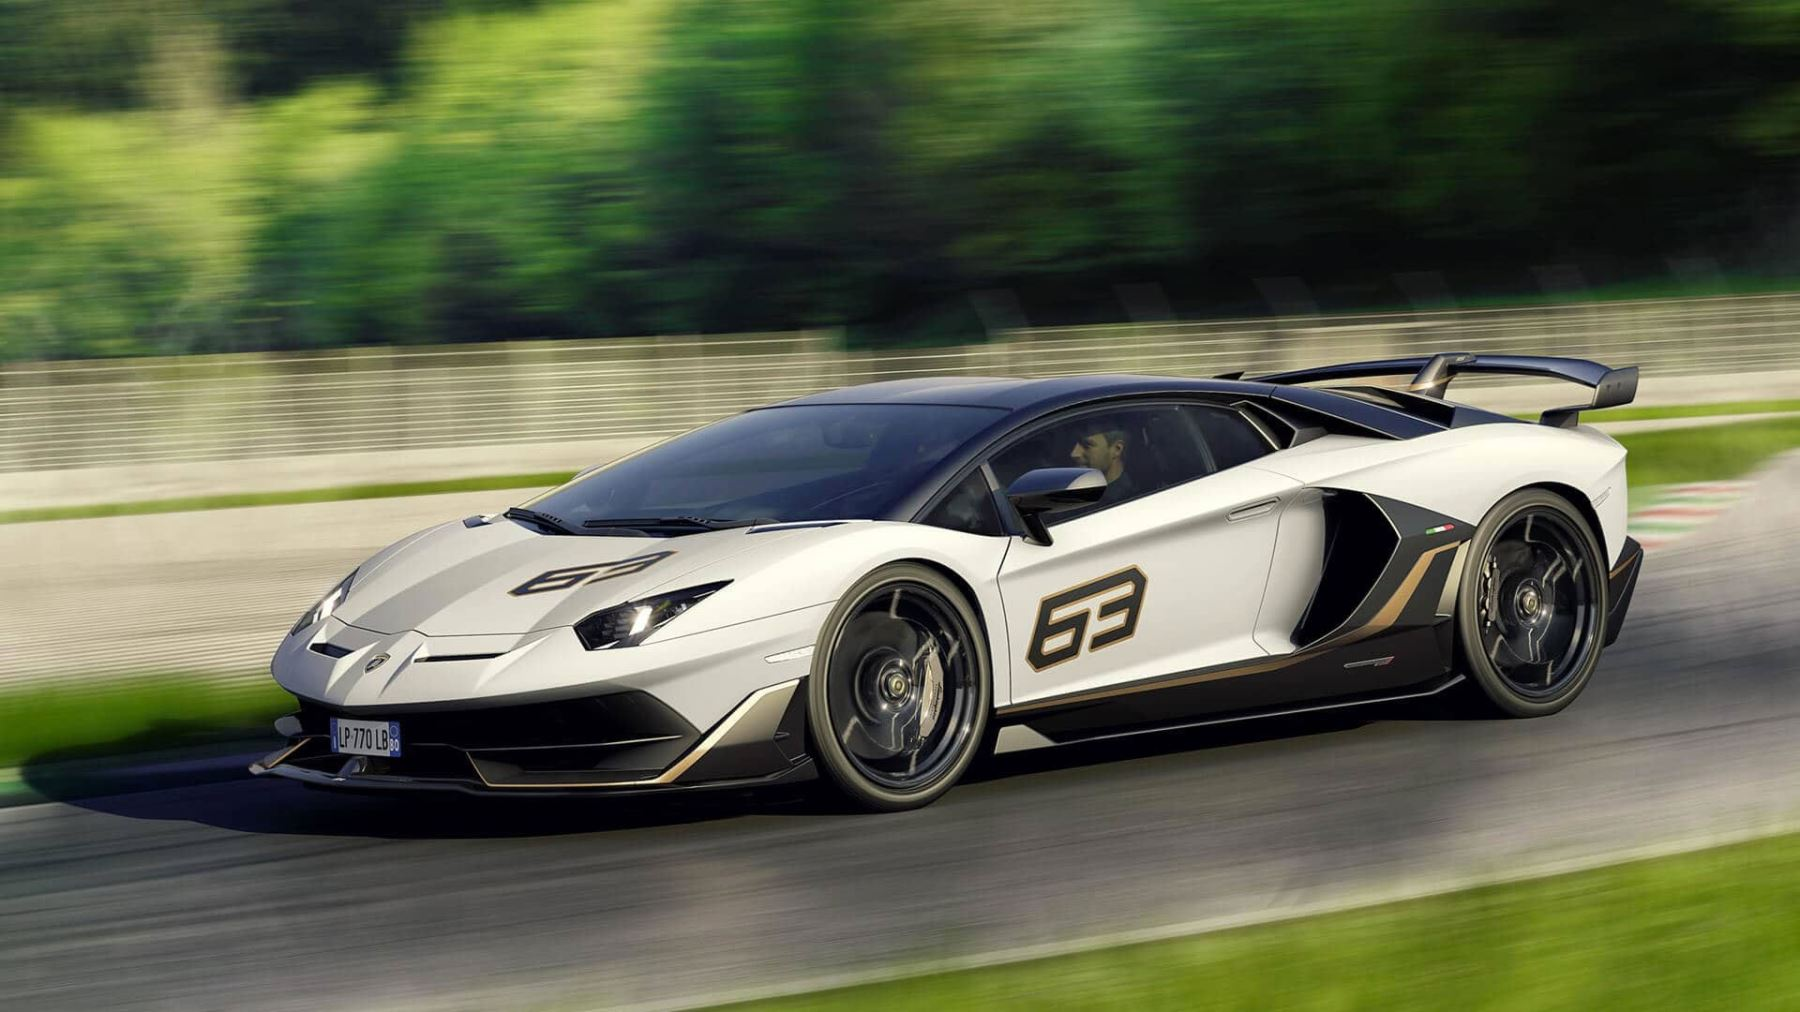 Lamborghini Aventador SVJ Coupe - Real Emotions Shape The Future image 14